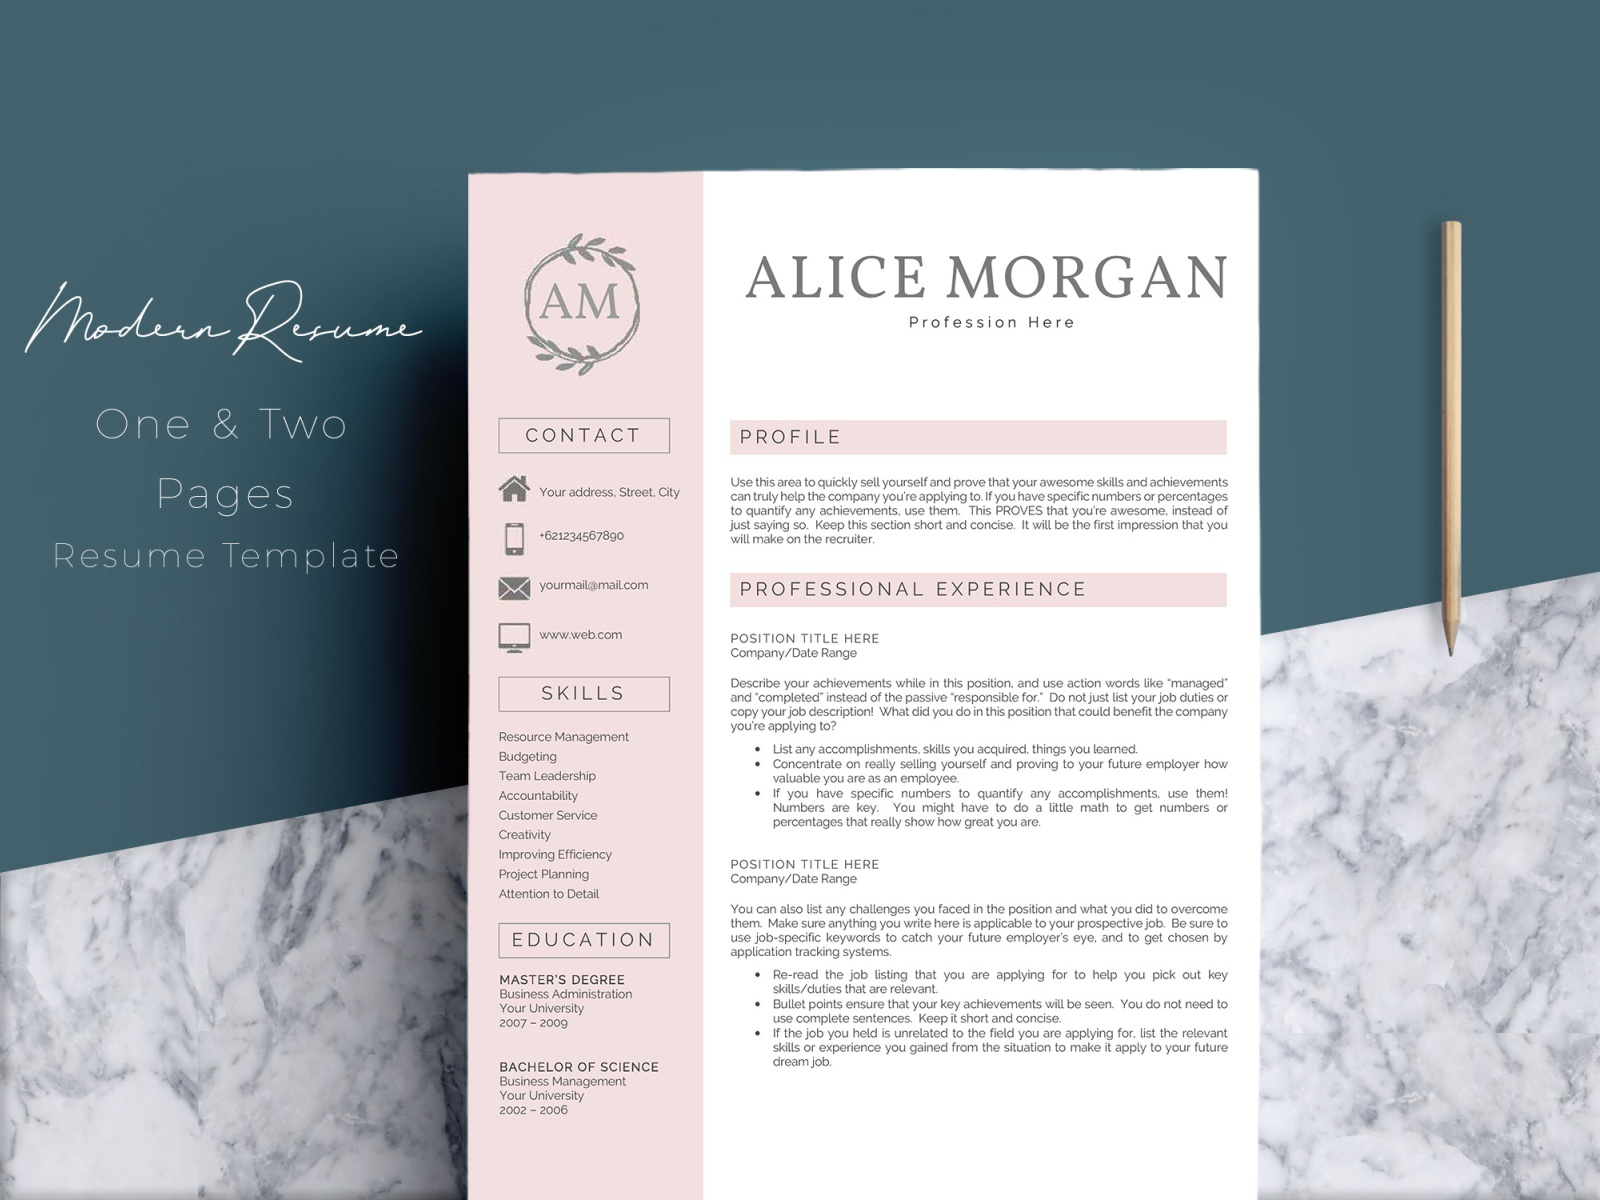 professional creative resume template alice by templates on dribbble and experienced Resume Professional And Creative Resume Templates